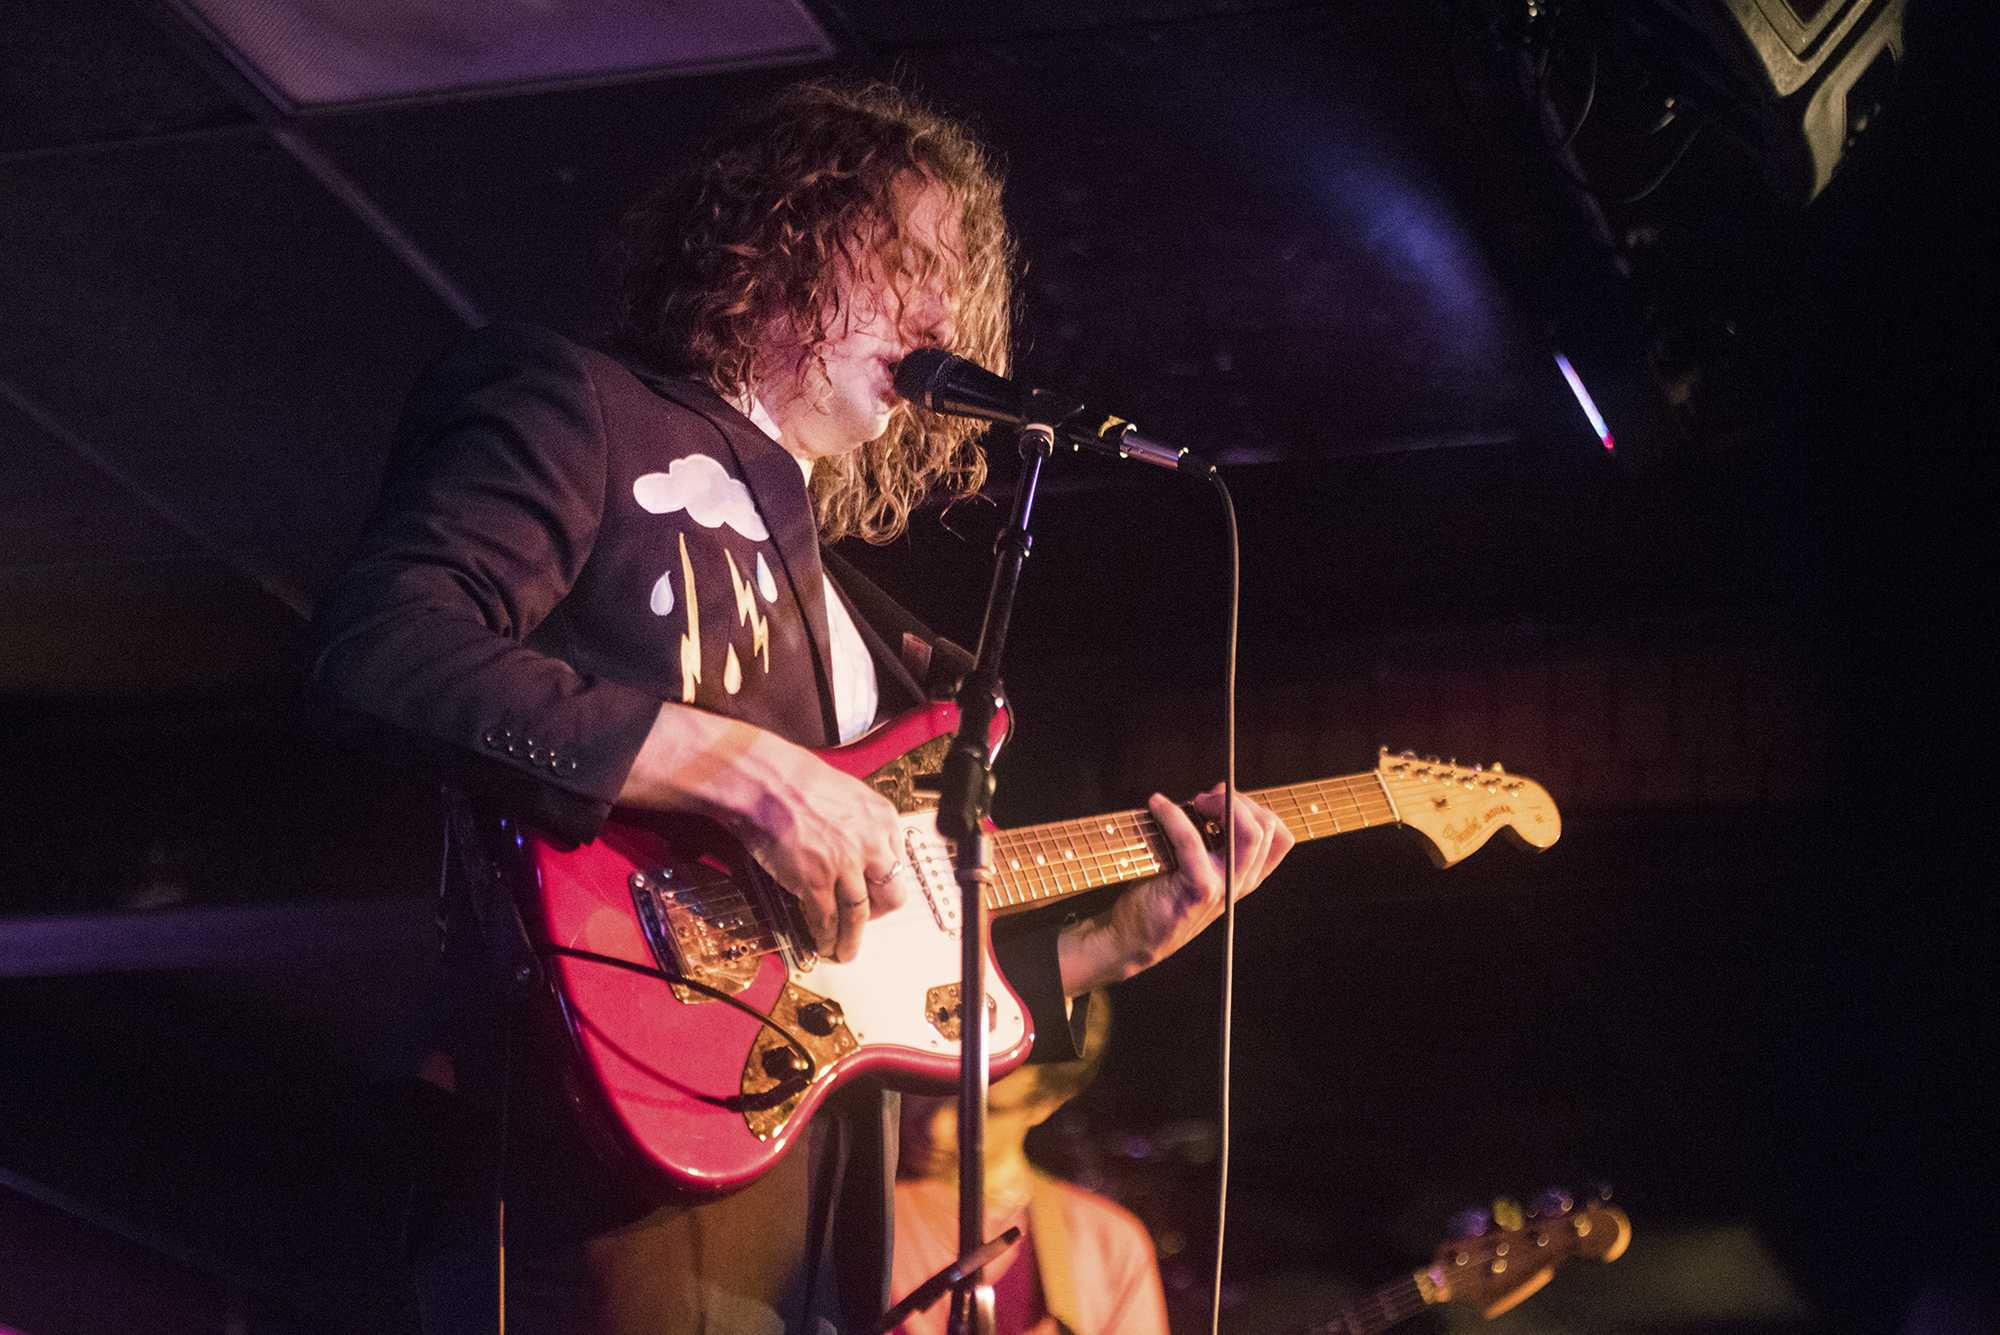 Kevin Morby performs at the Mill on May 4, 2018. Morby is an indie rock singer and songwriter from Kansas City, Missouri. (The Daily Iowan/Olivia Sun)